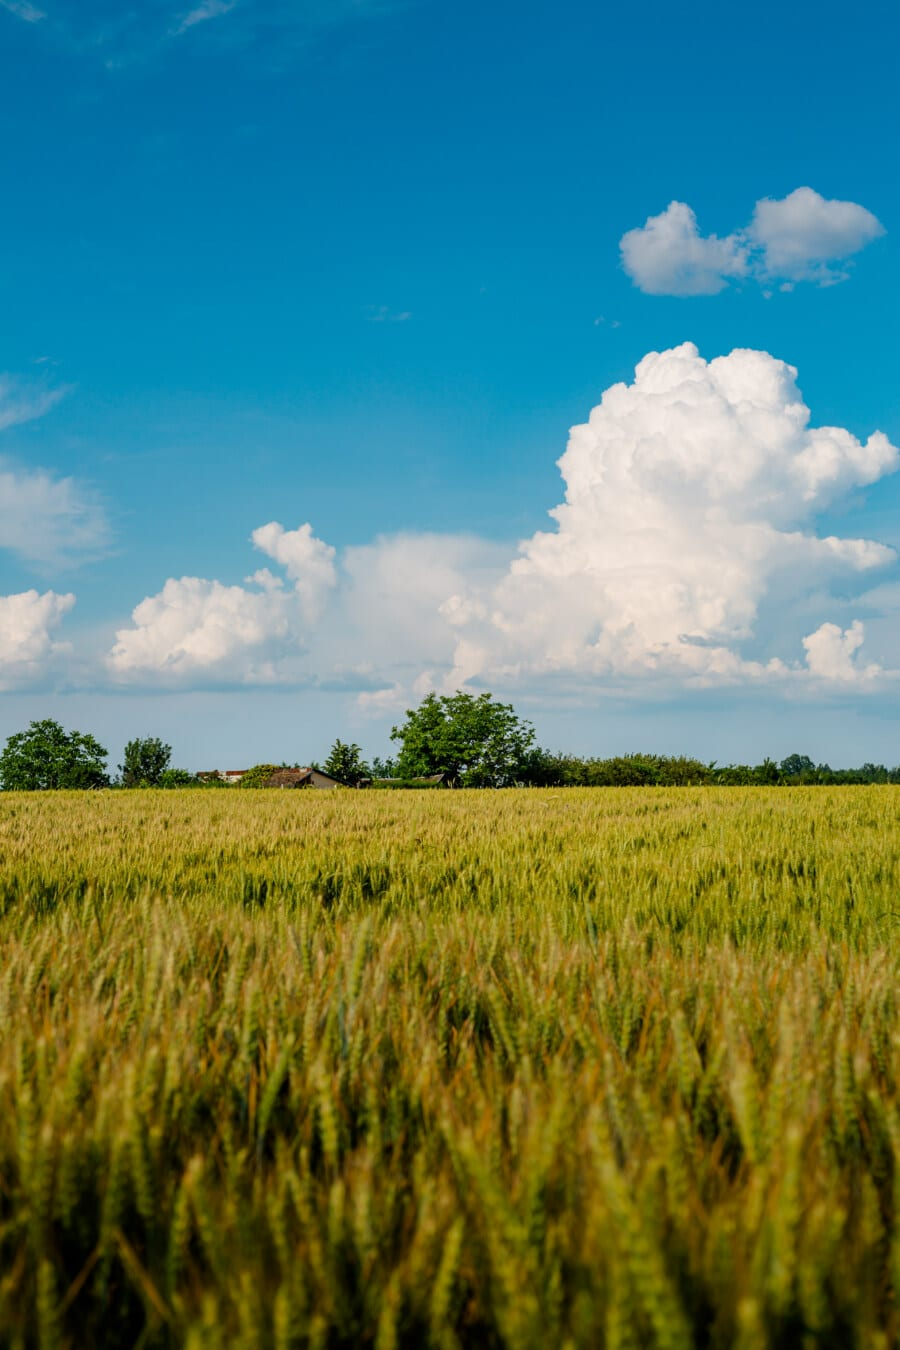 wheatfield, spring time, wheat, grass, rural, cereal, field, meadow, agriculture, landscape